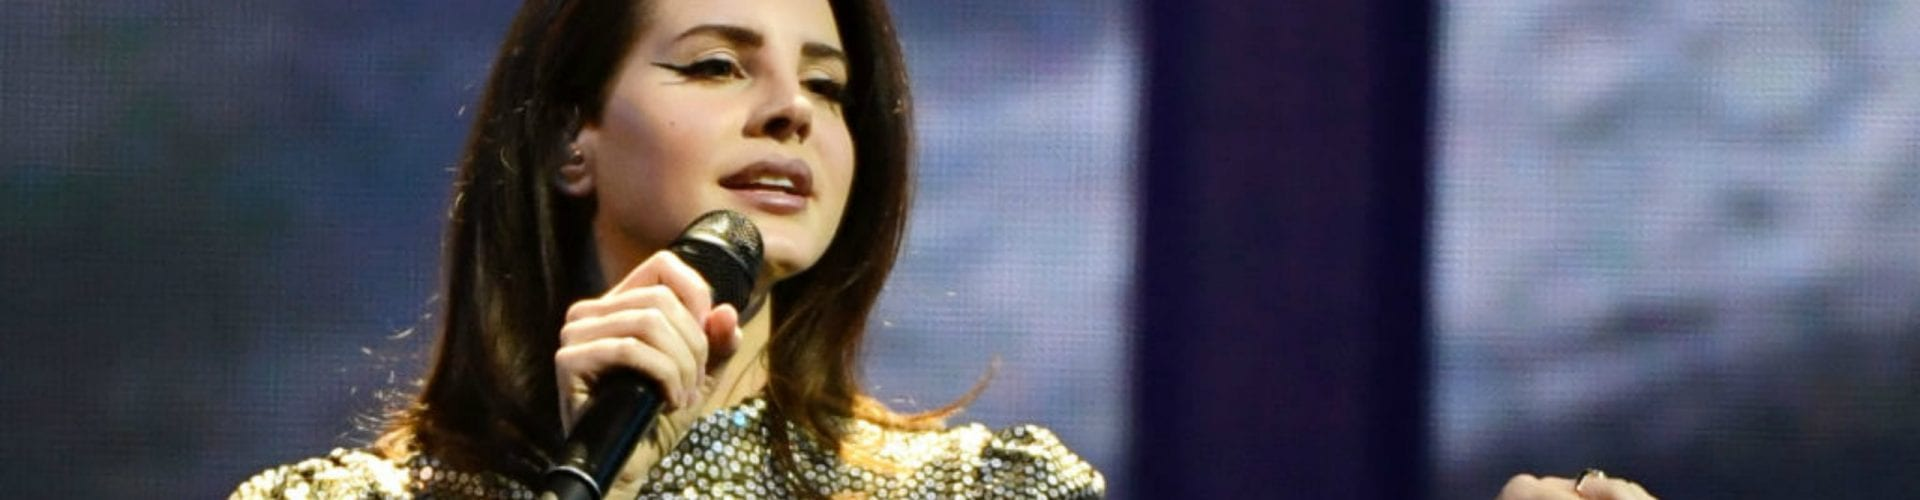 NHL Games, Lana Del Rey Tour Lead Tuesday Onsales